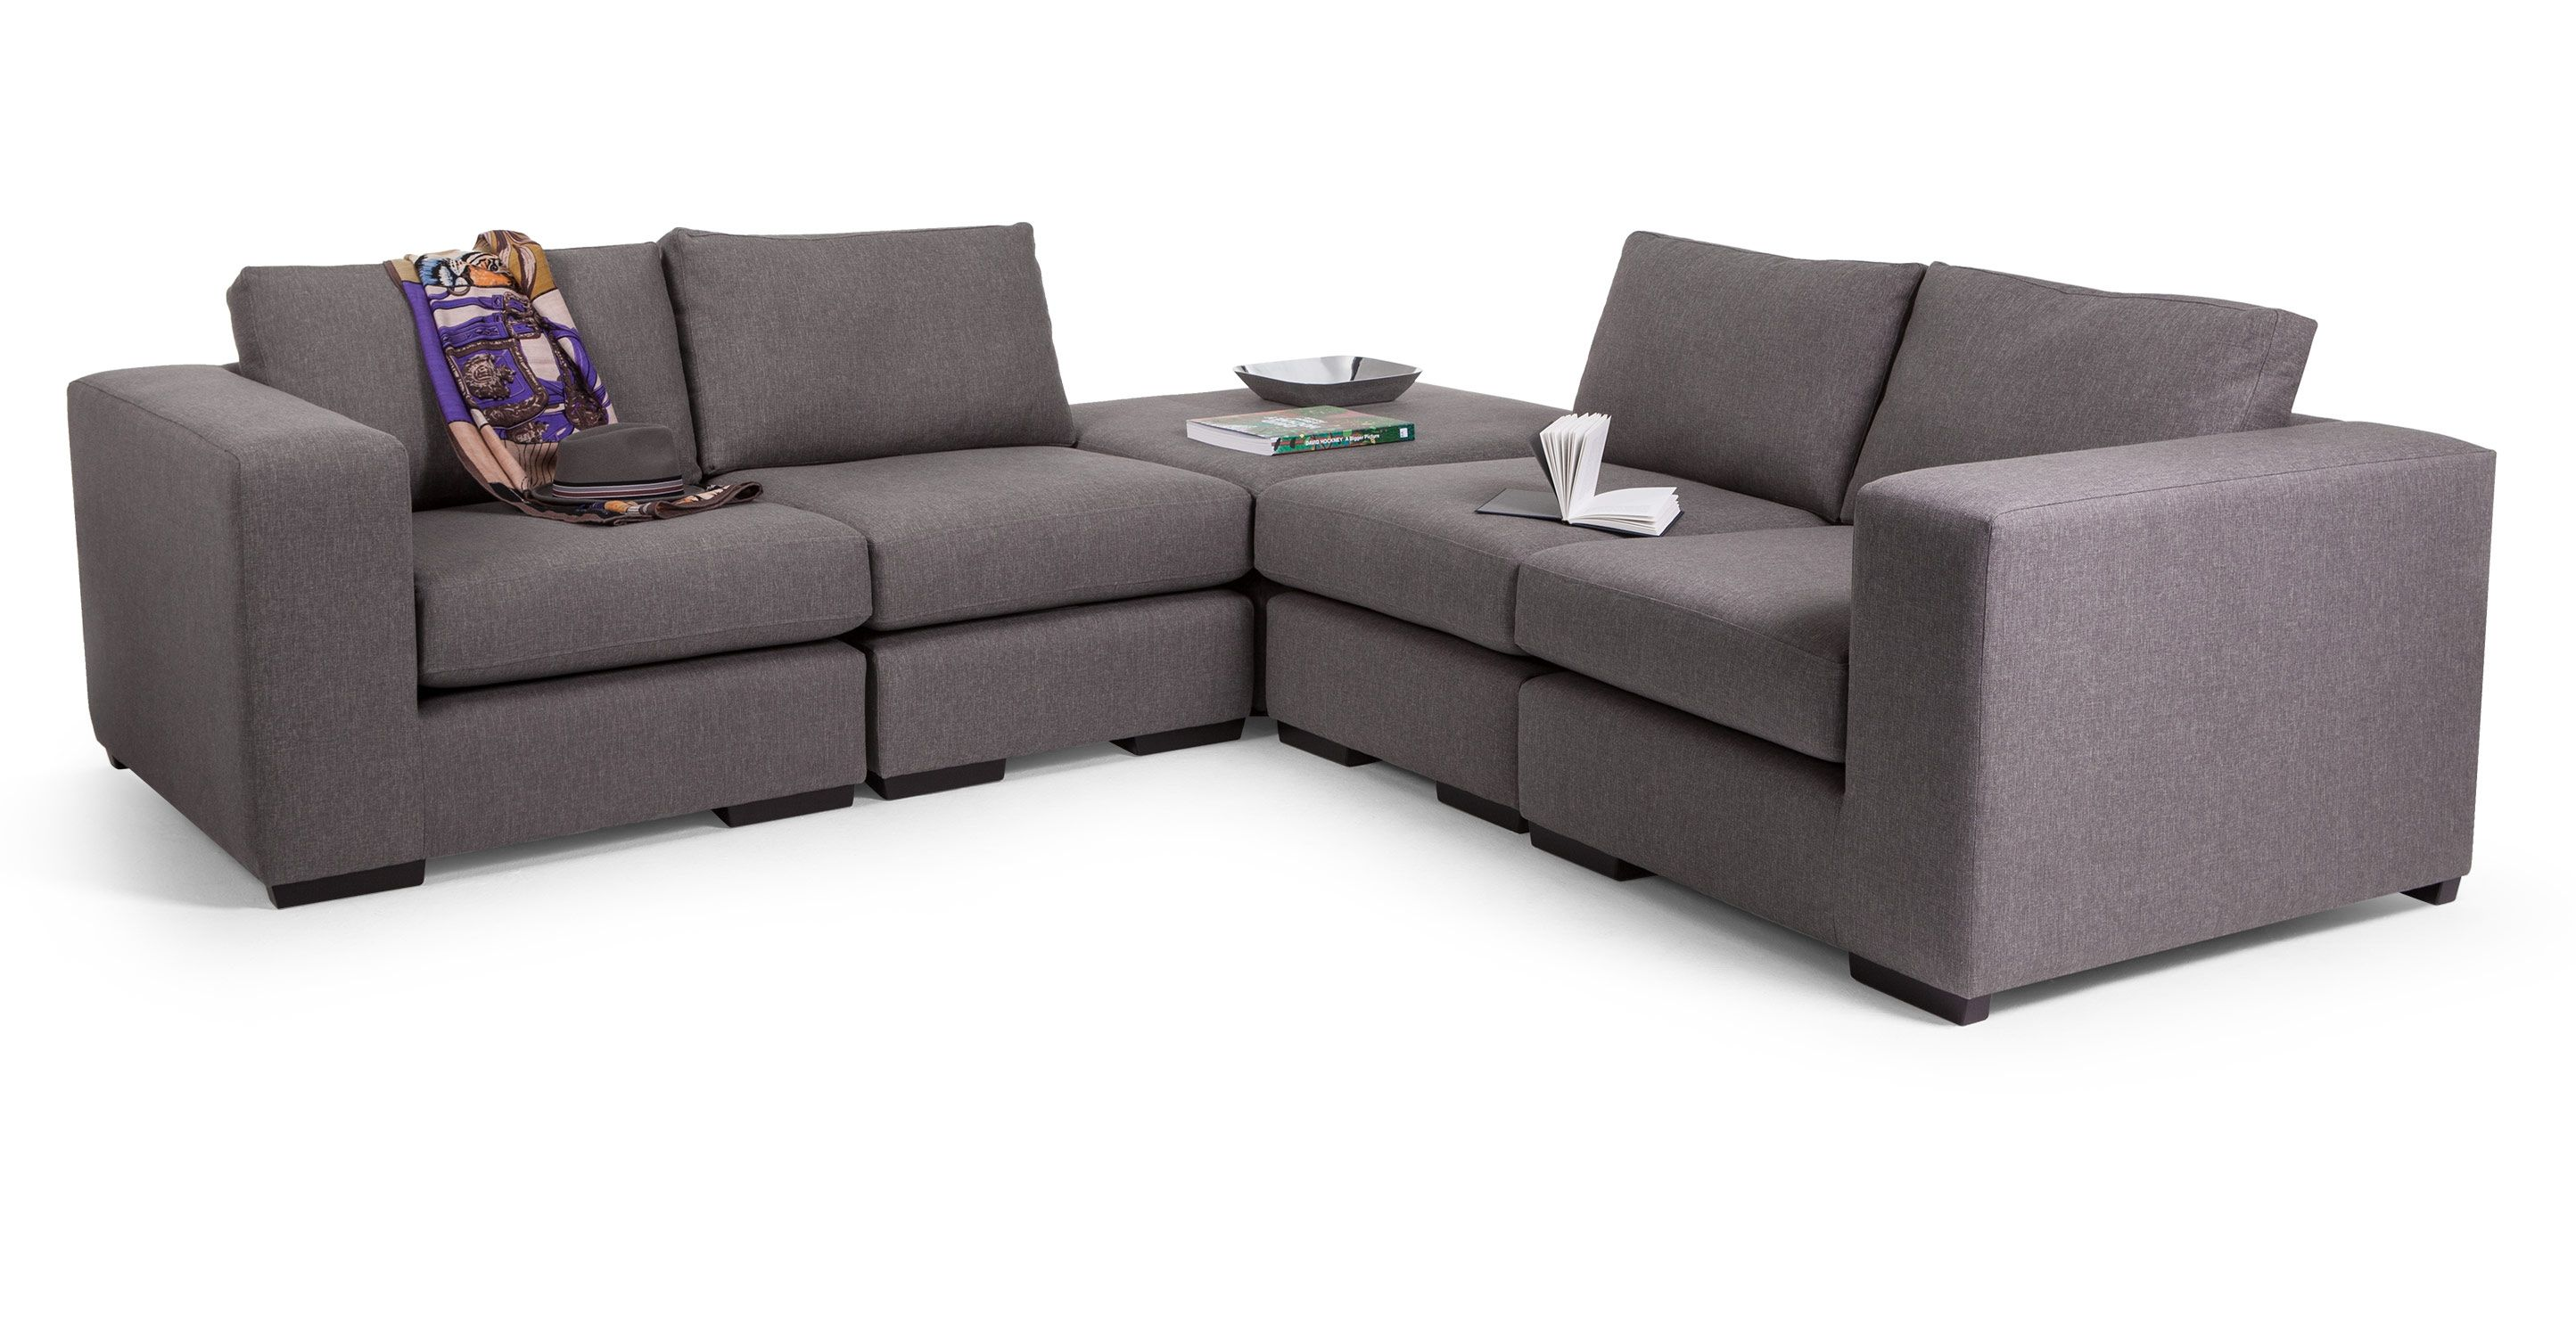 Abingdon Modular Corner Sofa Group In Misty Grey Made Com Modular Corner Sofa Leather Corner Sofa Corner Sofa Uk